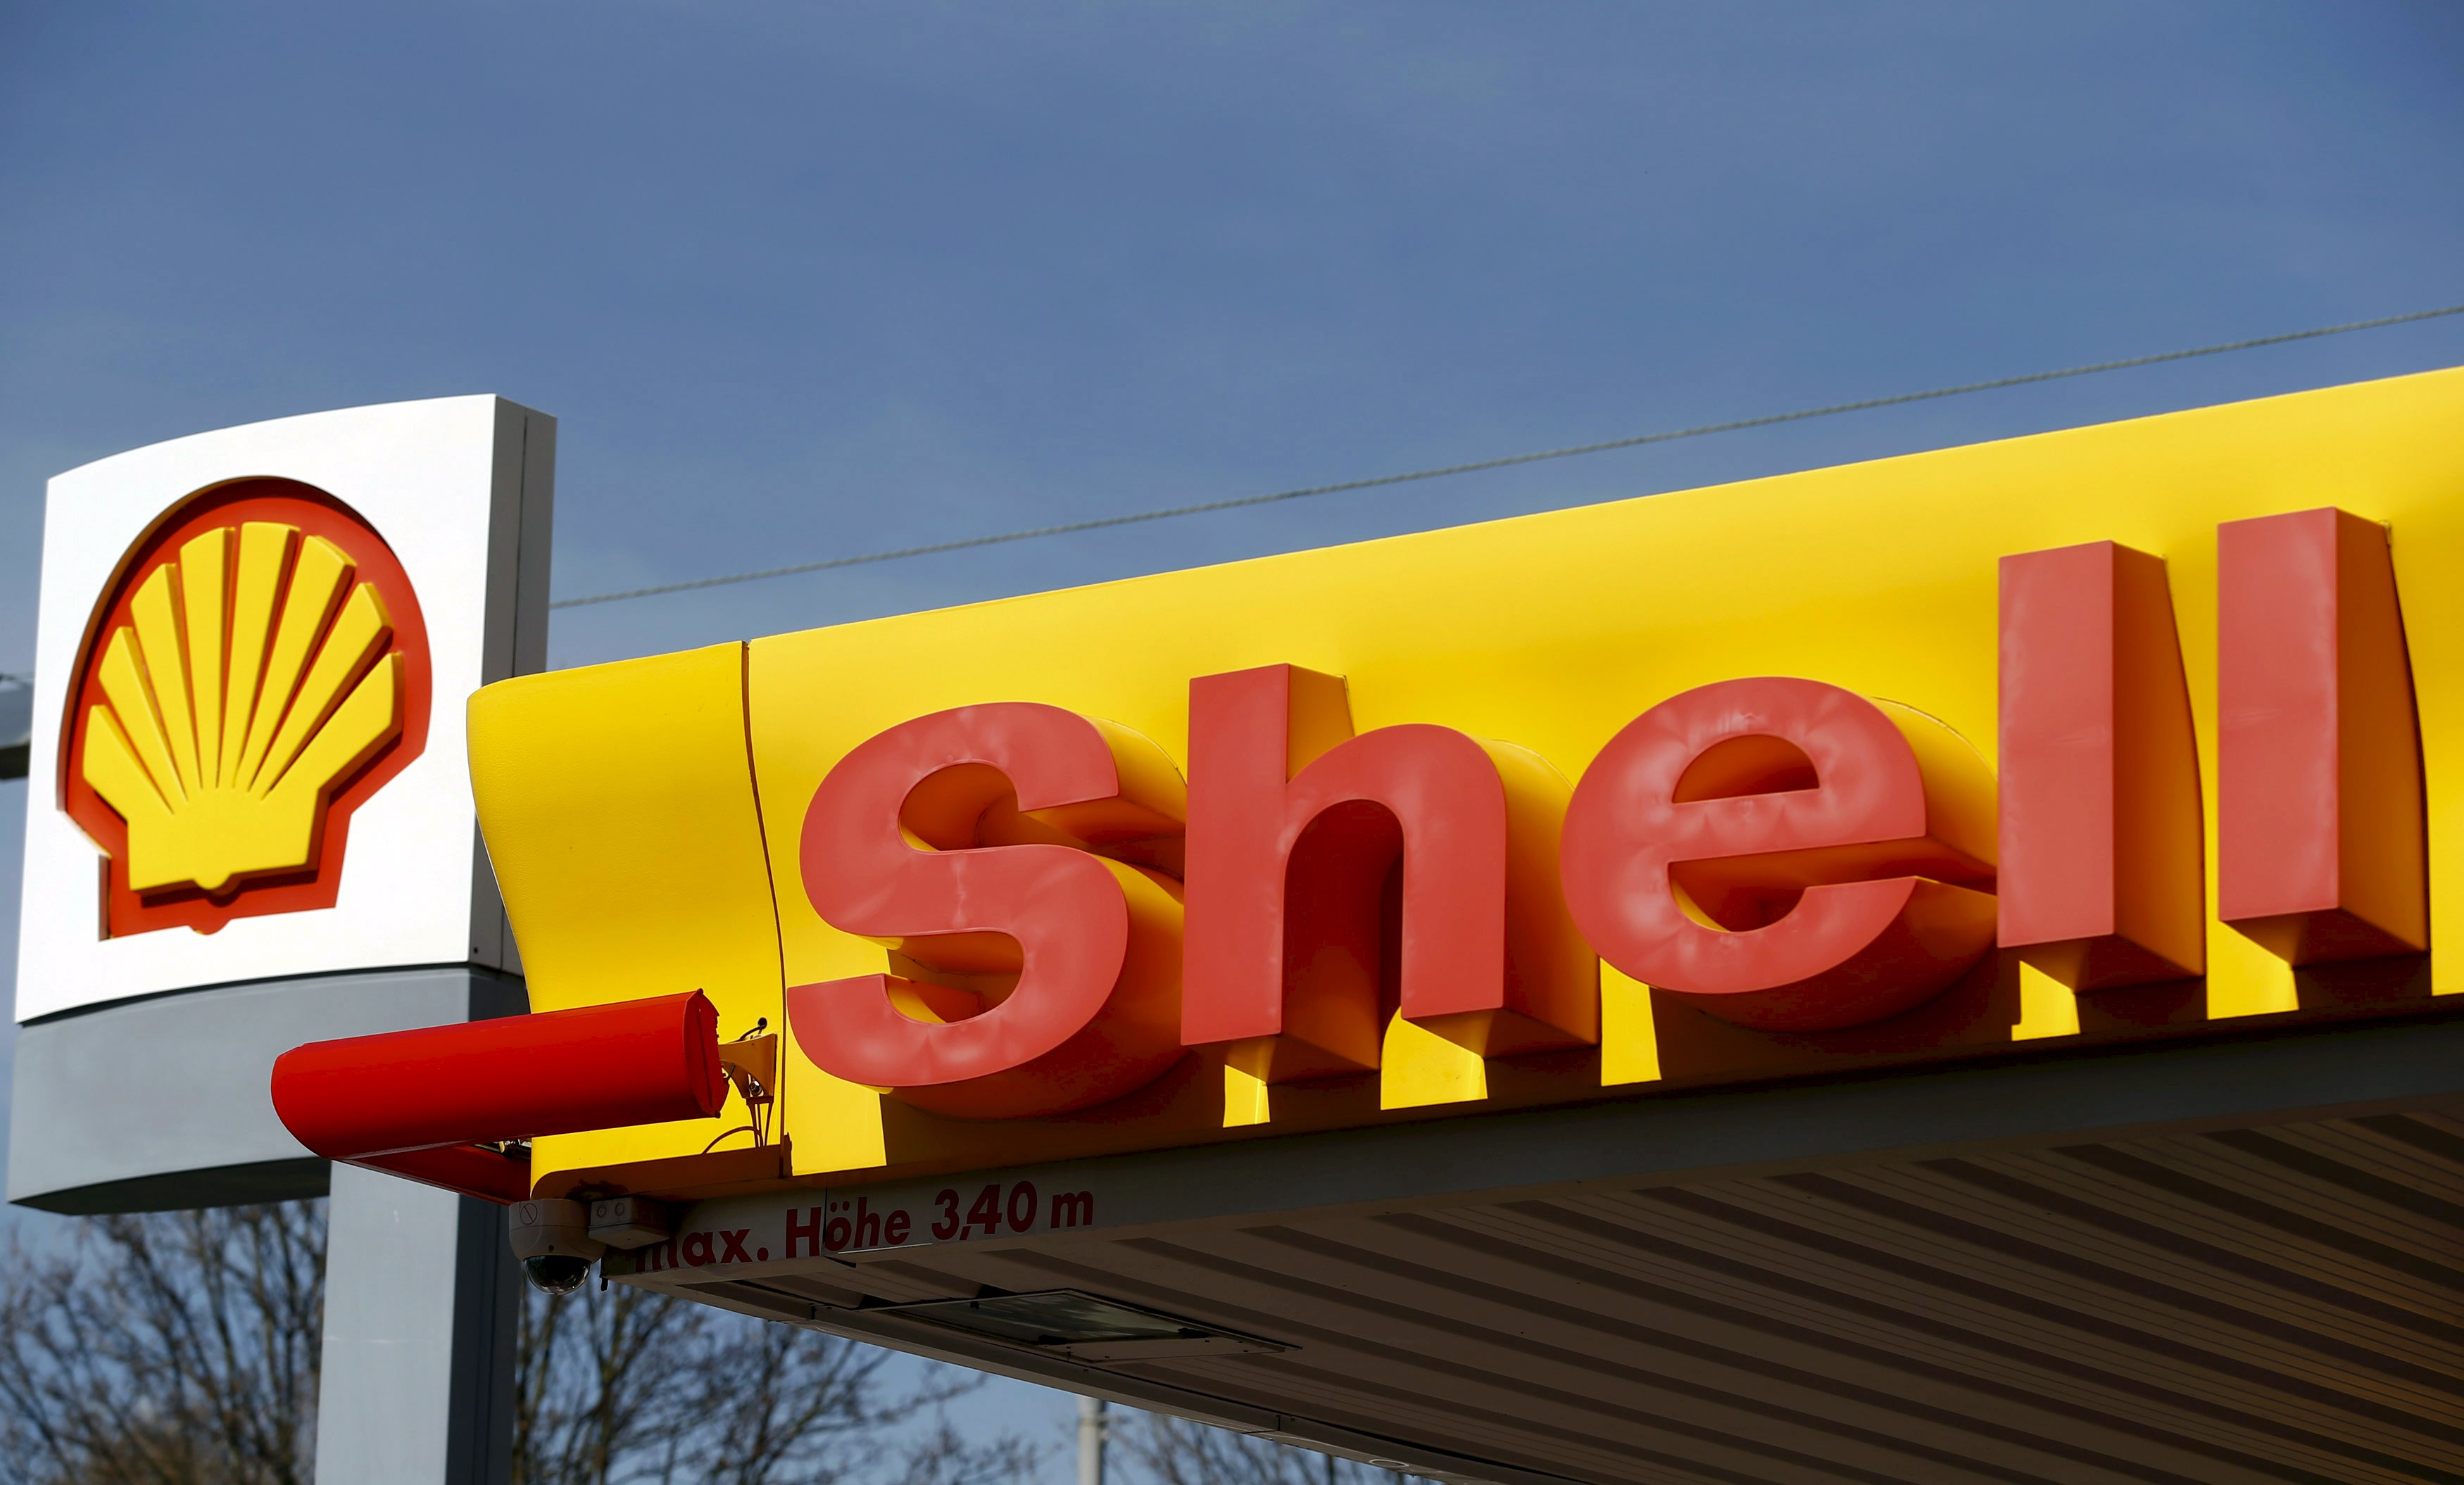 Shell's company logo is pictured at a gas station in Zurich in this April 8, 2015 file photo. Royal Dutch Shell, Europe's largest oil company, reported its lowest annual income in at least 13 years on February 4, 2016 as slumping oil prices hit profits. REUTERS/Arnd Wiegmann/Files